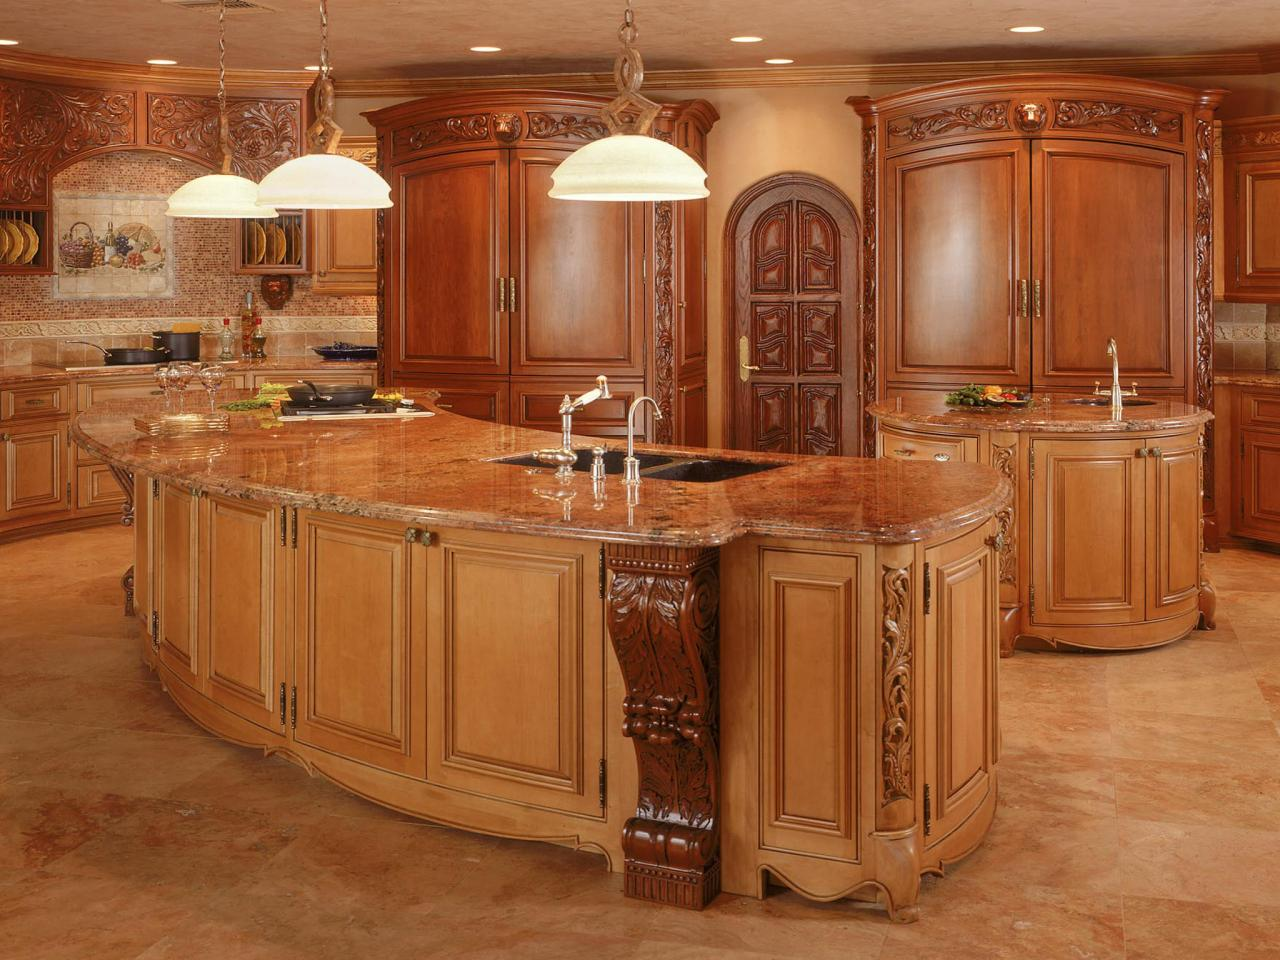 Victorian kitchen design pictures ideas tips from hgtv for Beautiful kitchen units designs